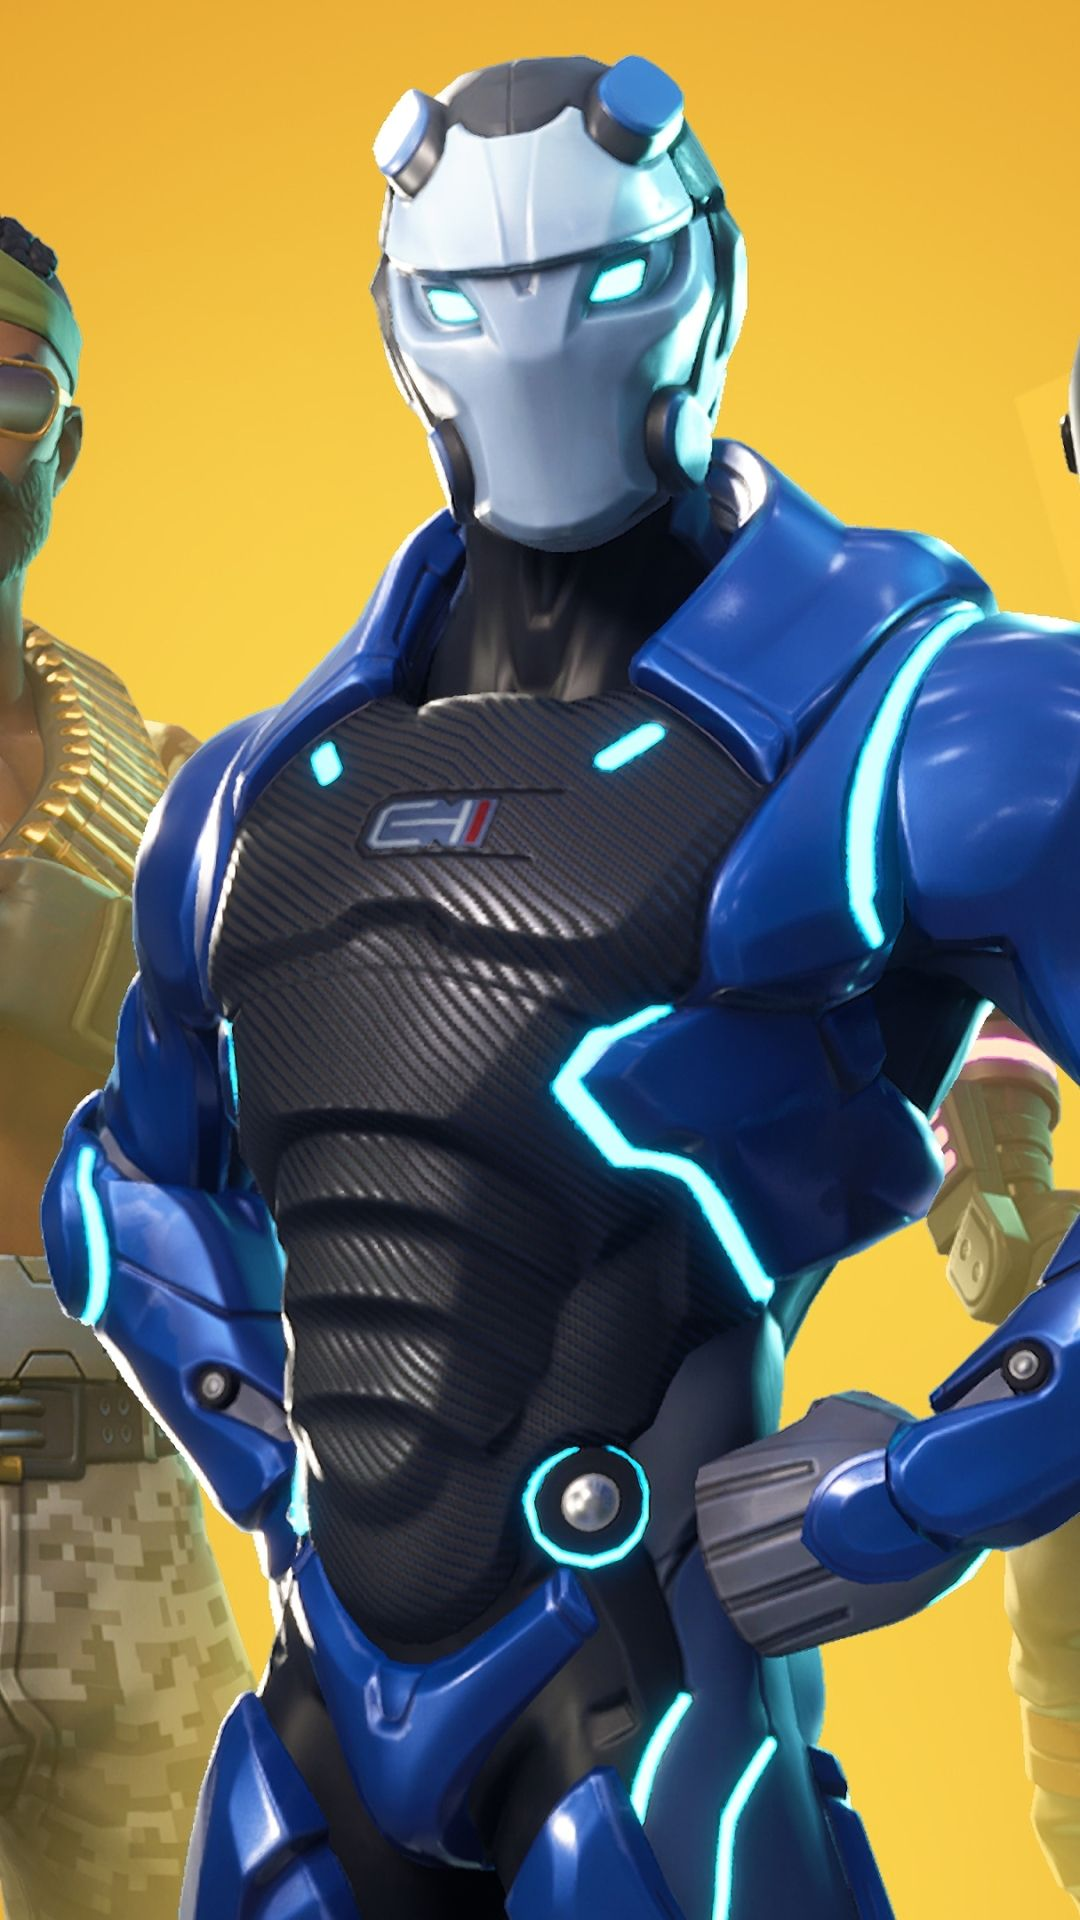 Cool Fortnite Wallpaper Iphone Background » Hupages